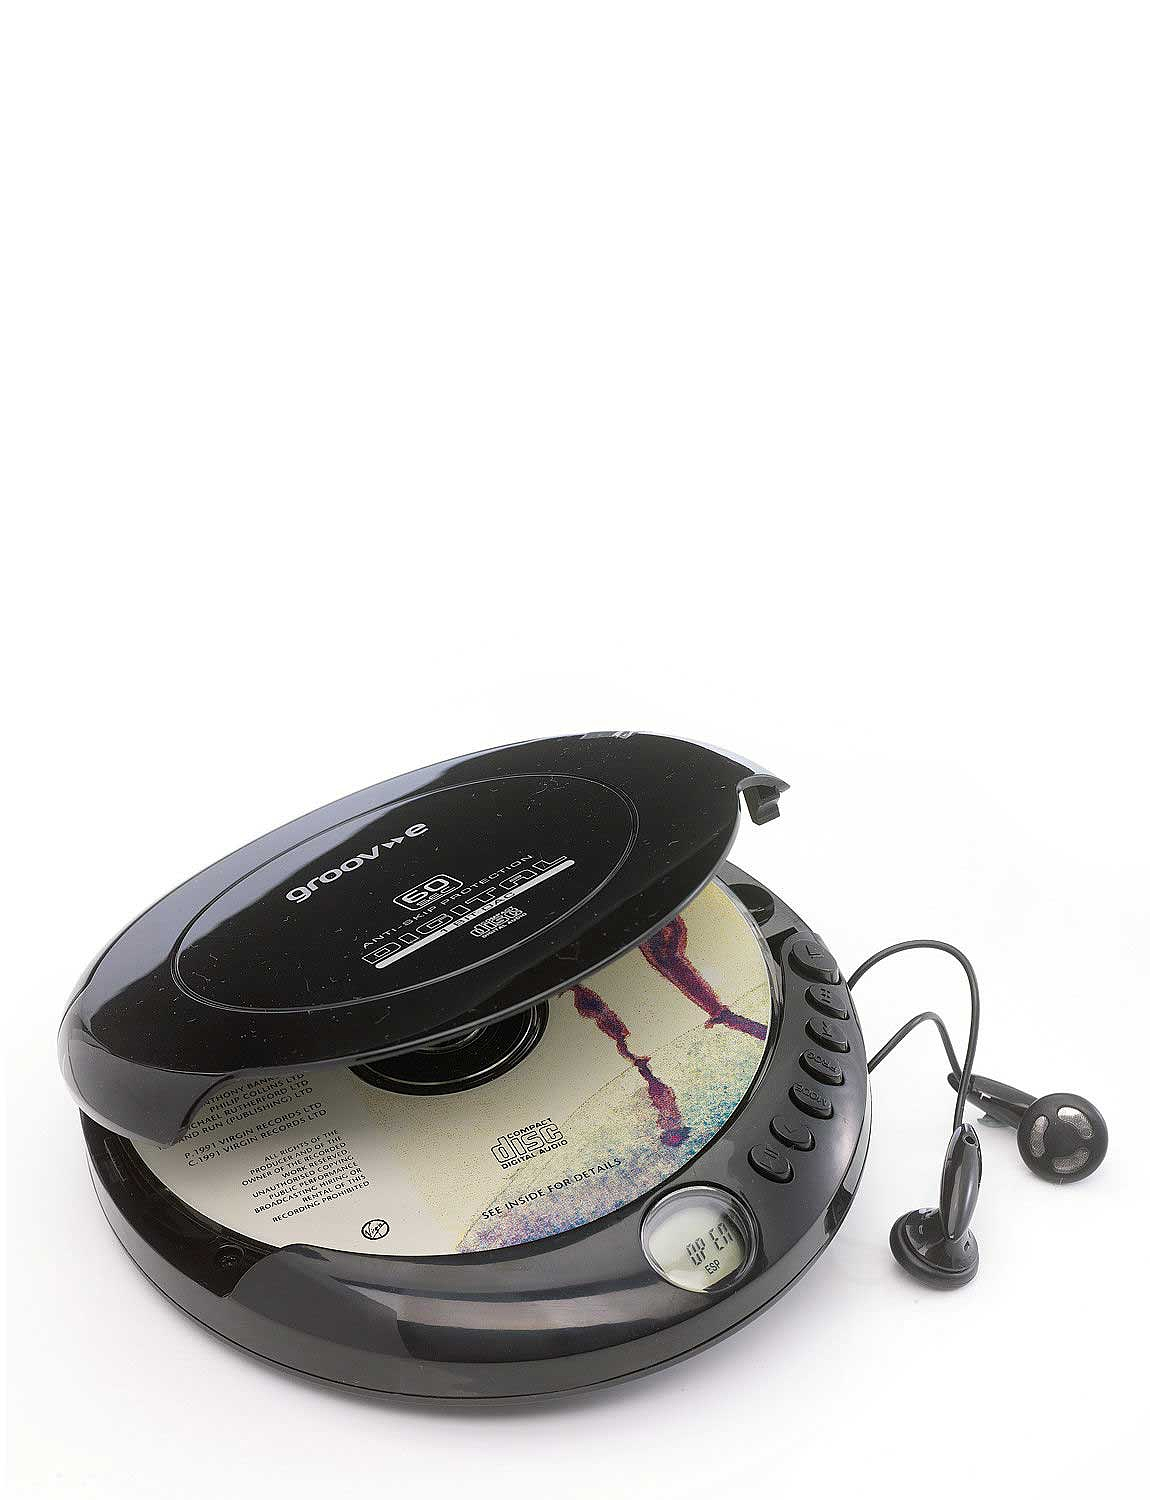 Portable Personal CD Player  - Black